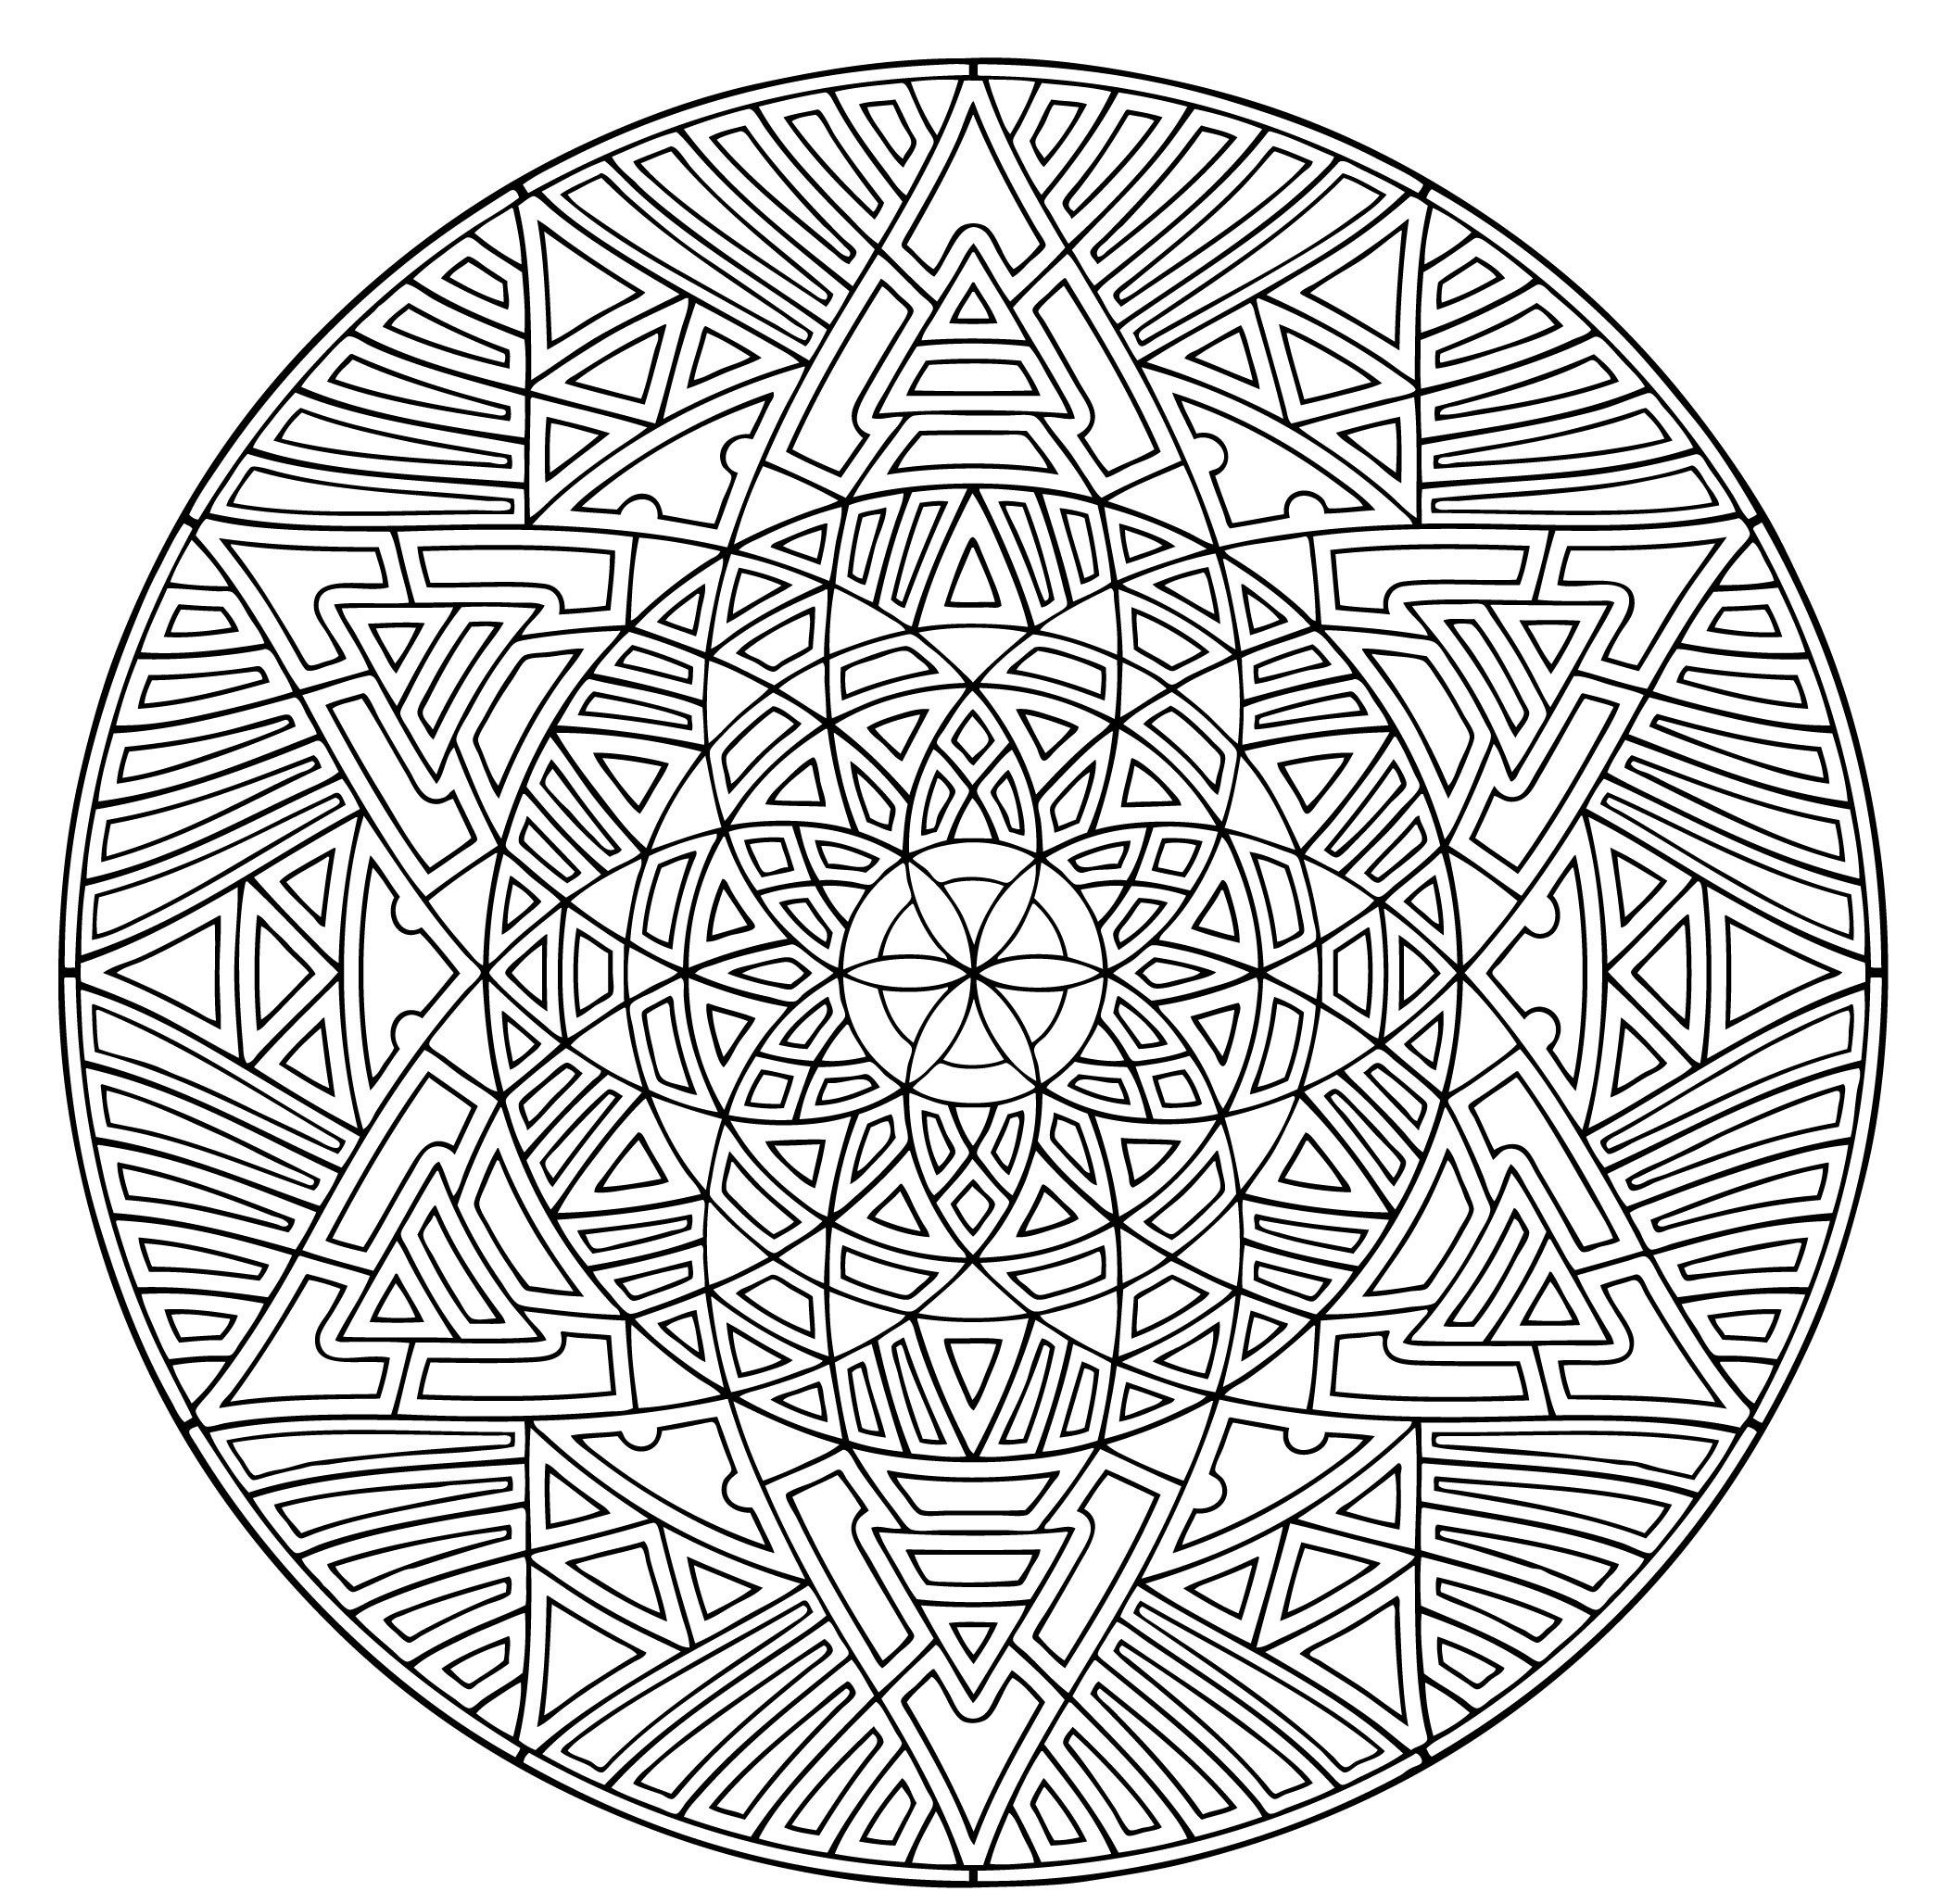 coloring pages adults pdf - Google Search | Geometric ...